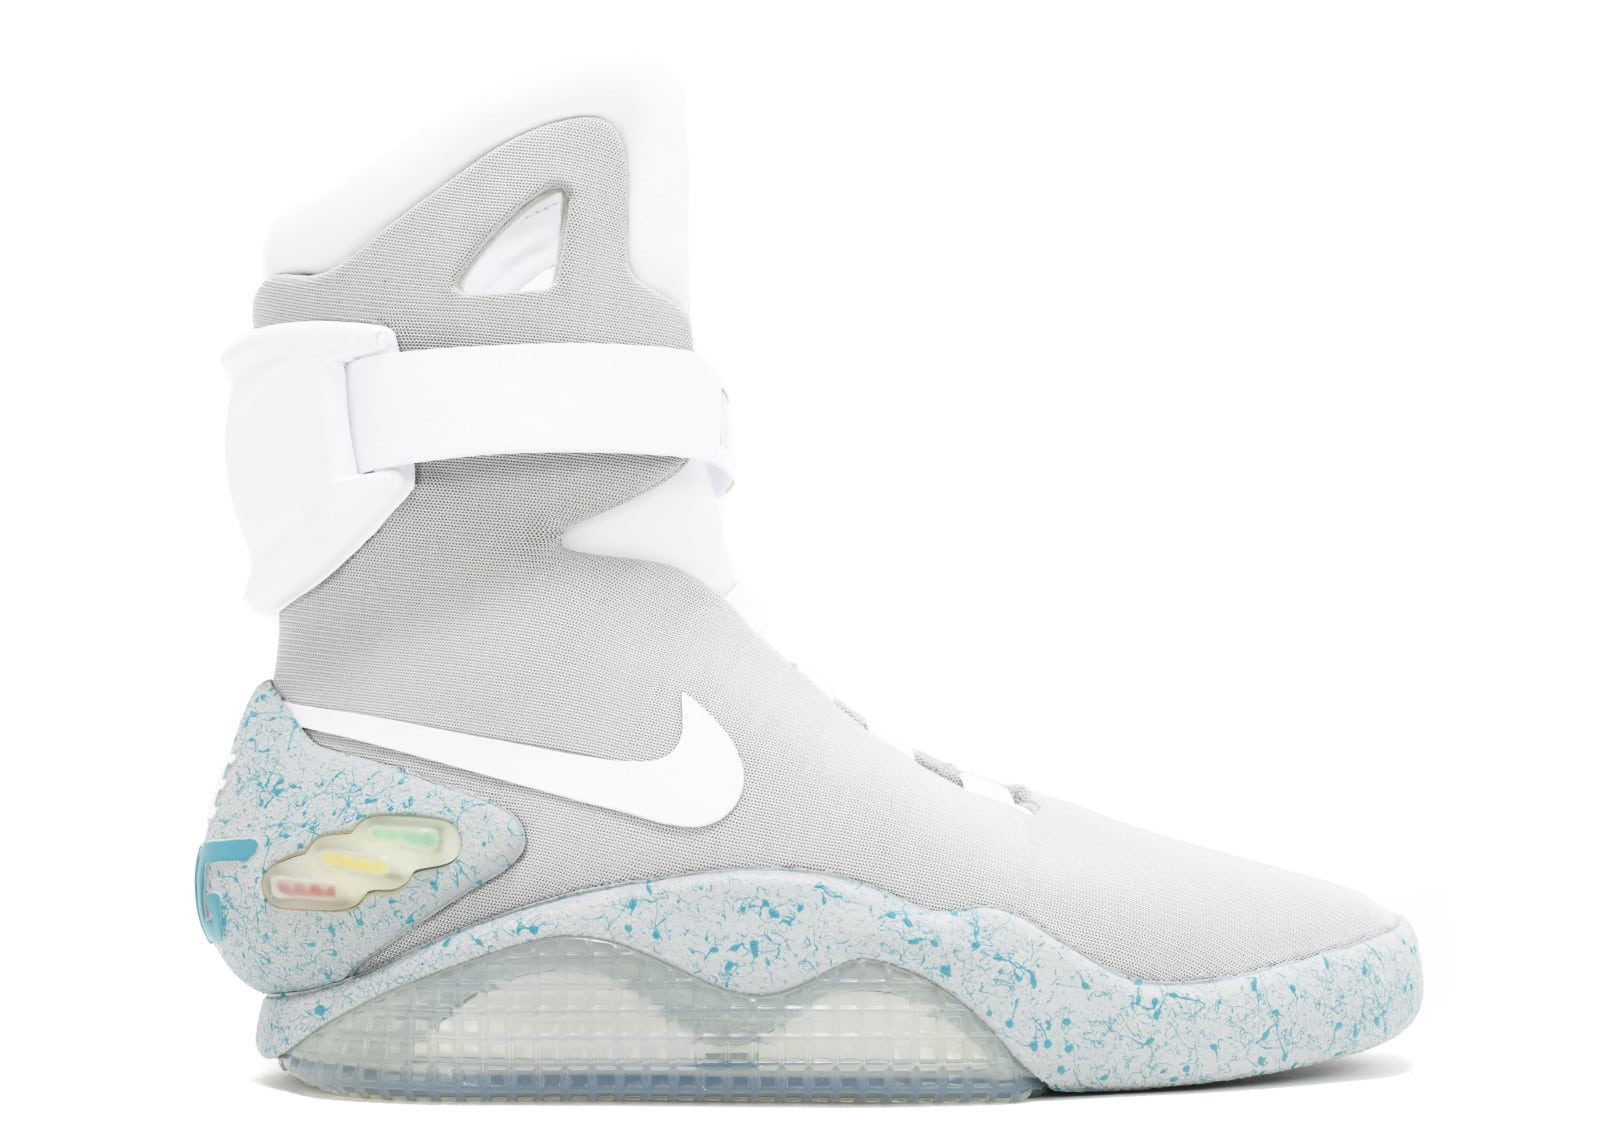 Nike Air Mag on Student Show